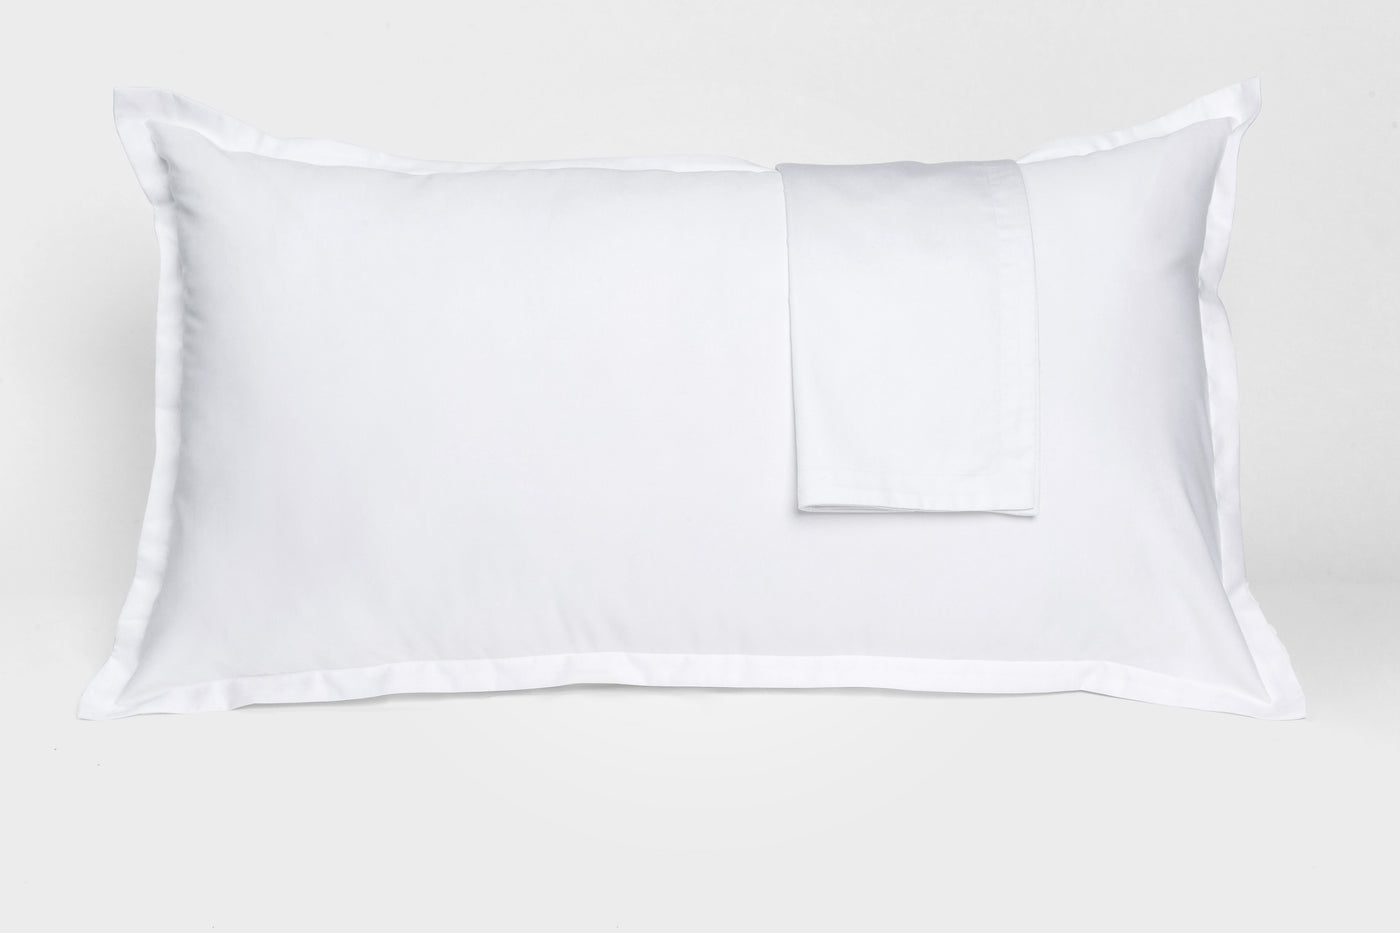 MOLECULE™ Pillow Shams